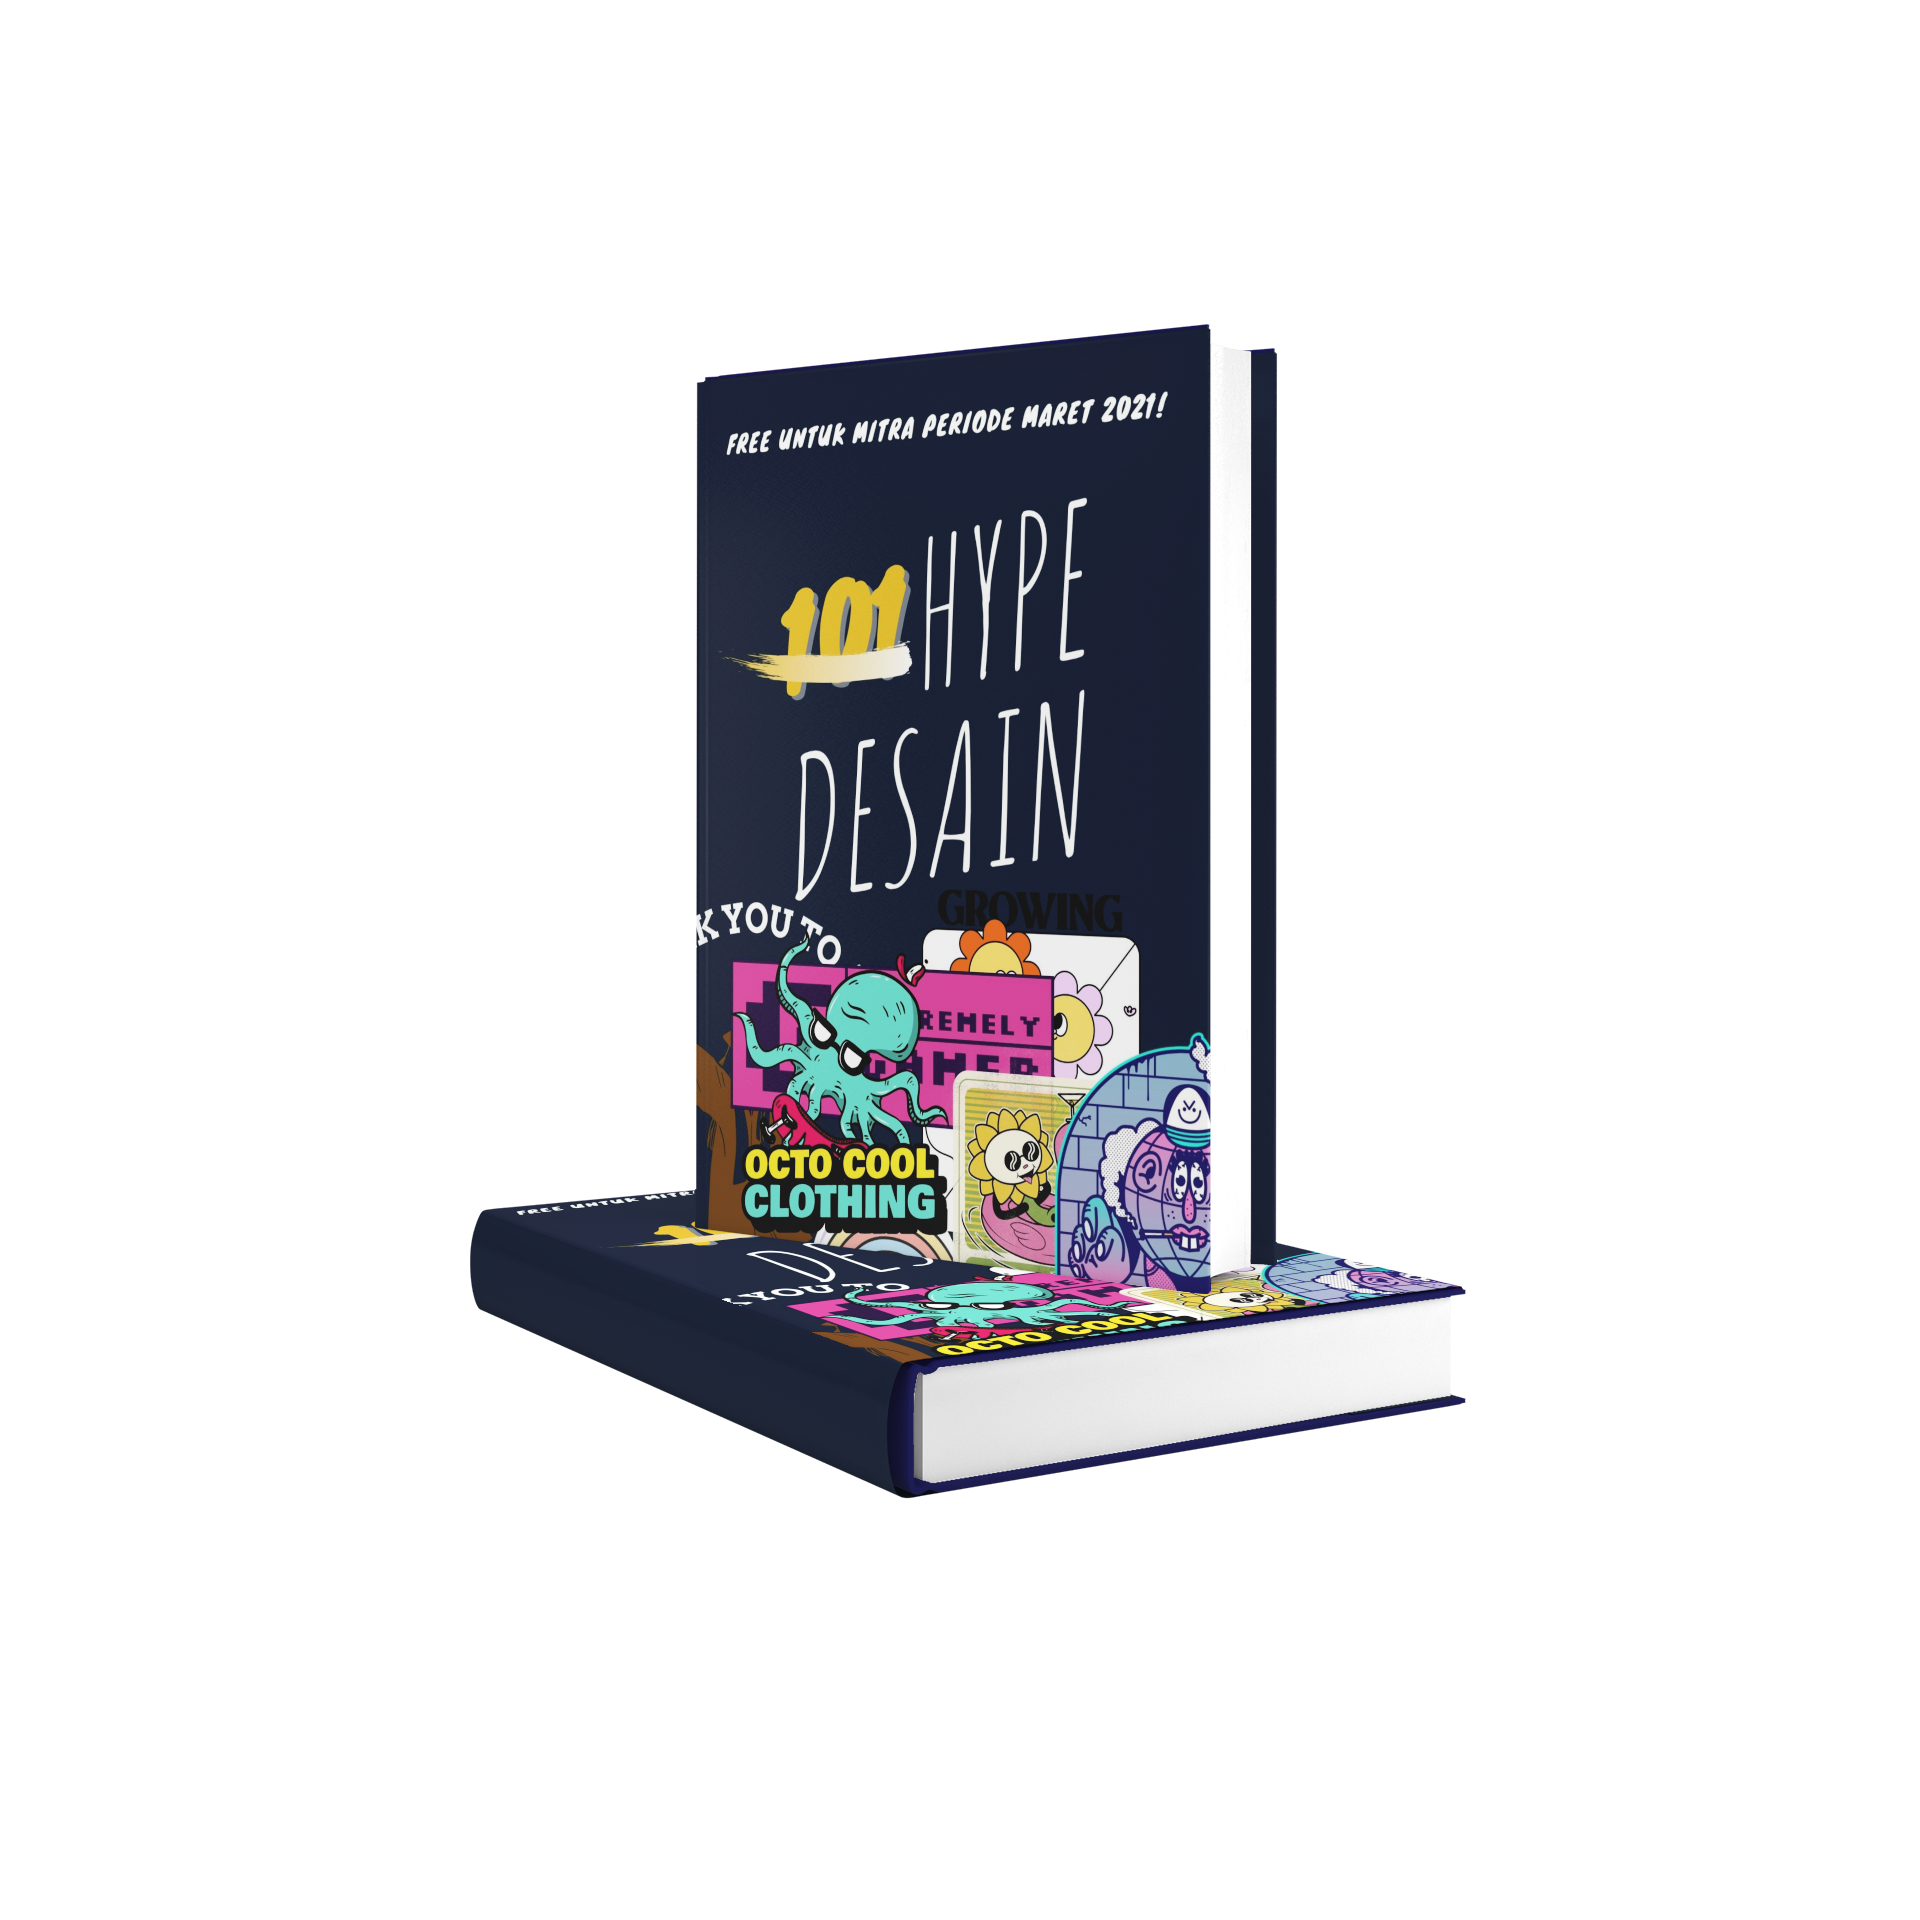 mockup-featuring-a-hardcover-book-standing-on-another-one-3424-el1 (1)